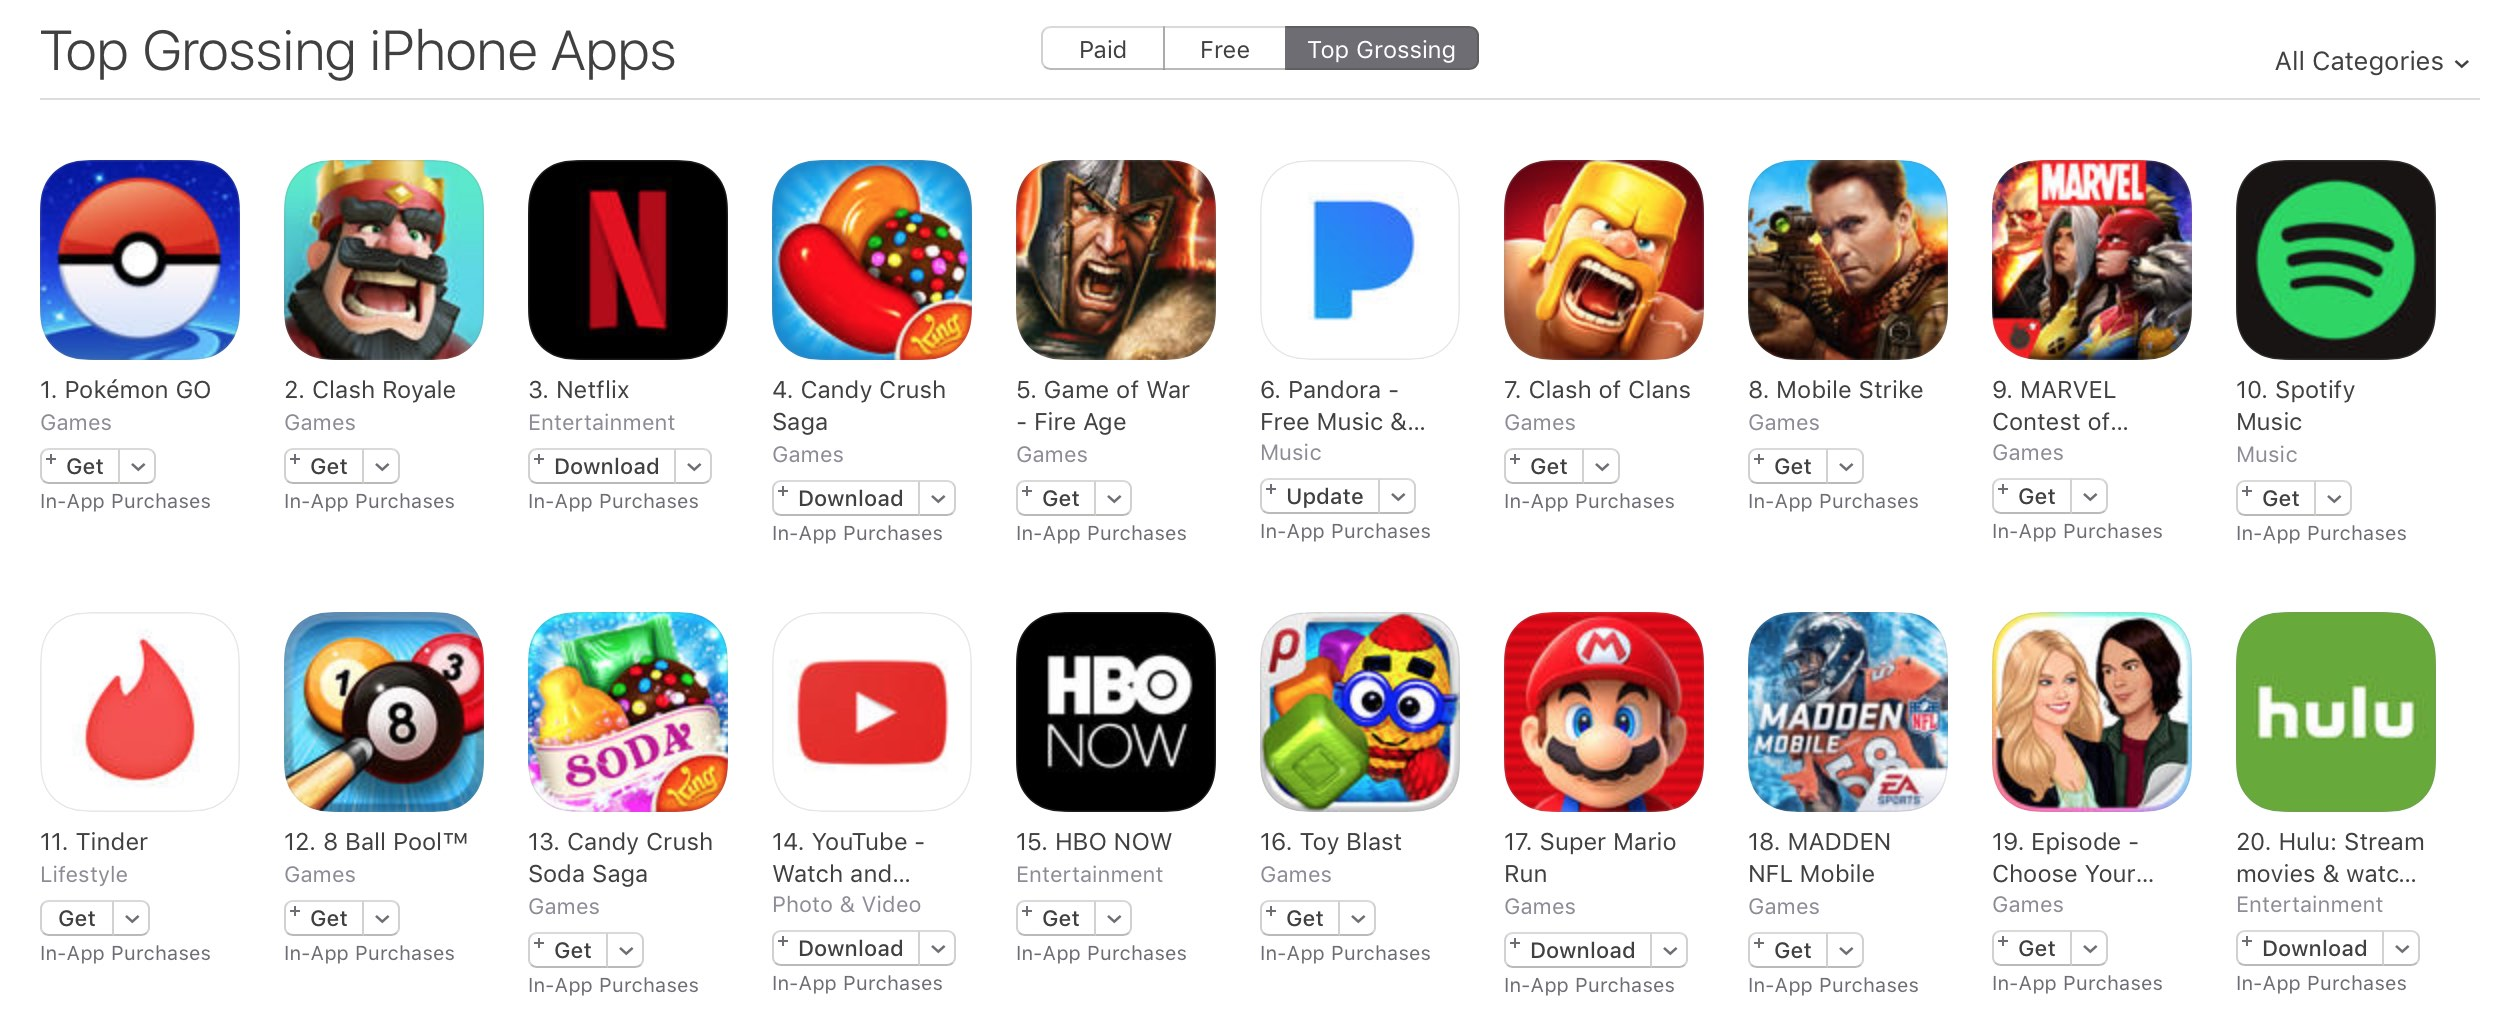 itunes top grossing apps super mario run